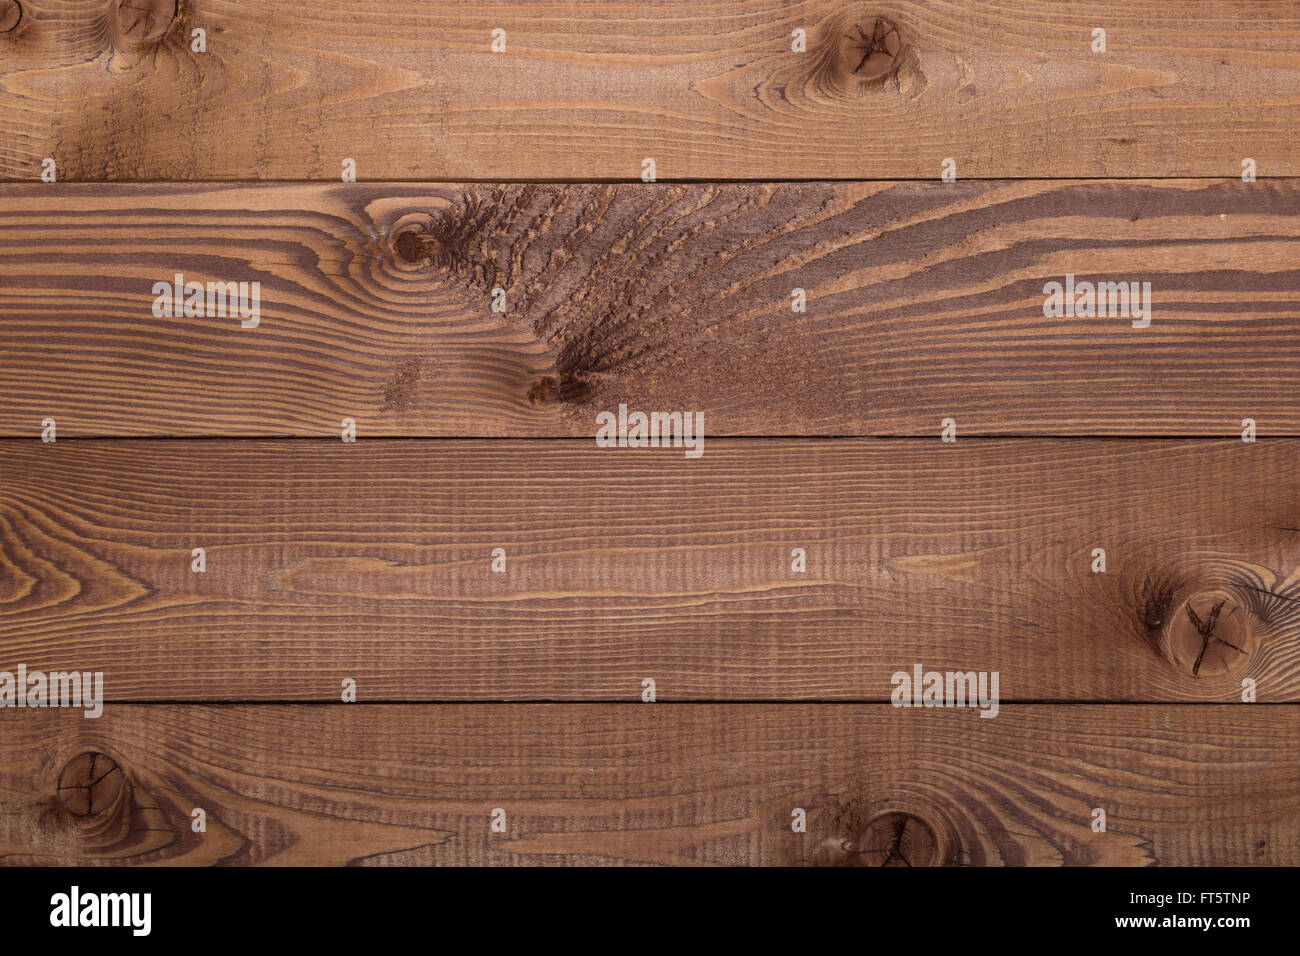 Brown wooden texture, horizontal desks, close up view Stock Photo